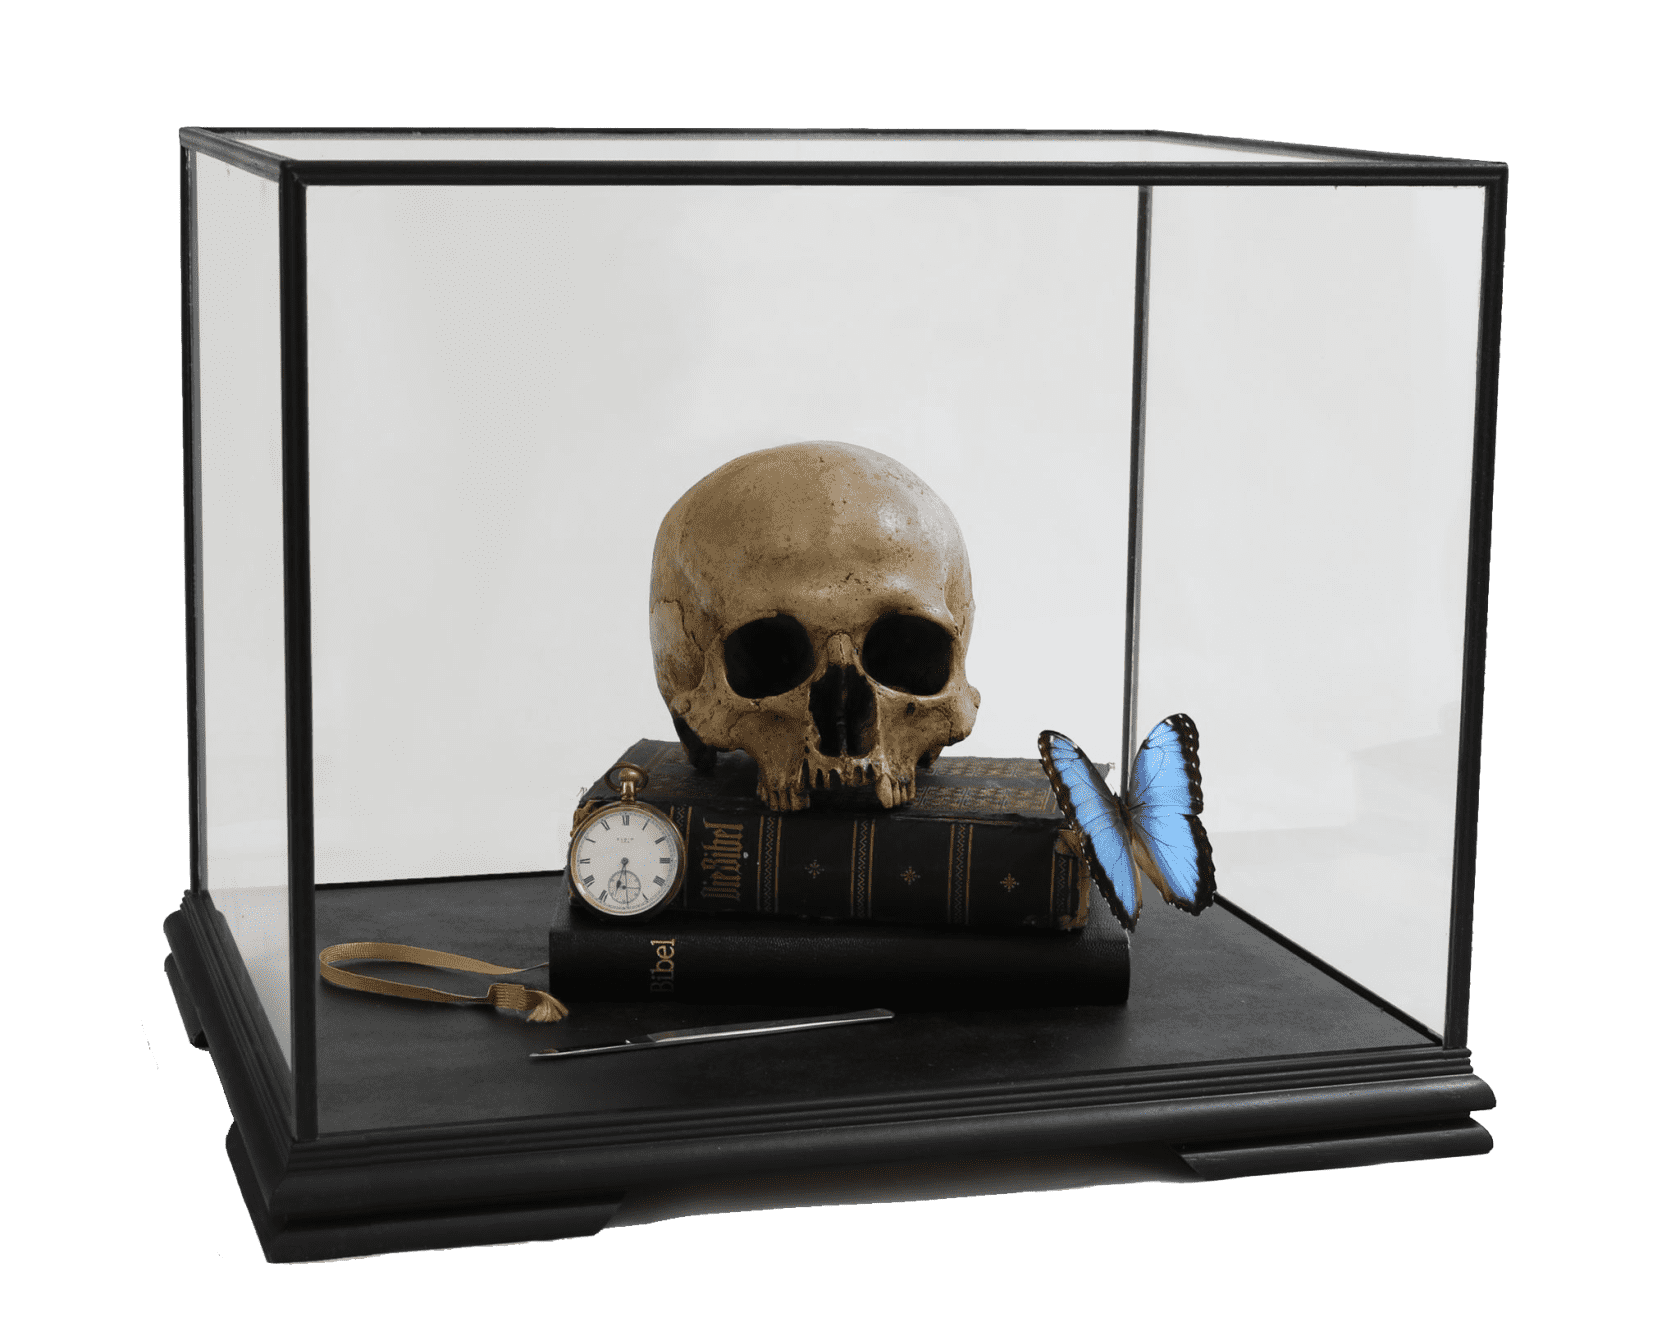 the connor brothers Memento Mori with Heilige Schrift and Morpho Peleides Cast human skull, 19th Century books, antique syringe and...